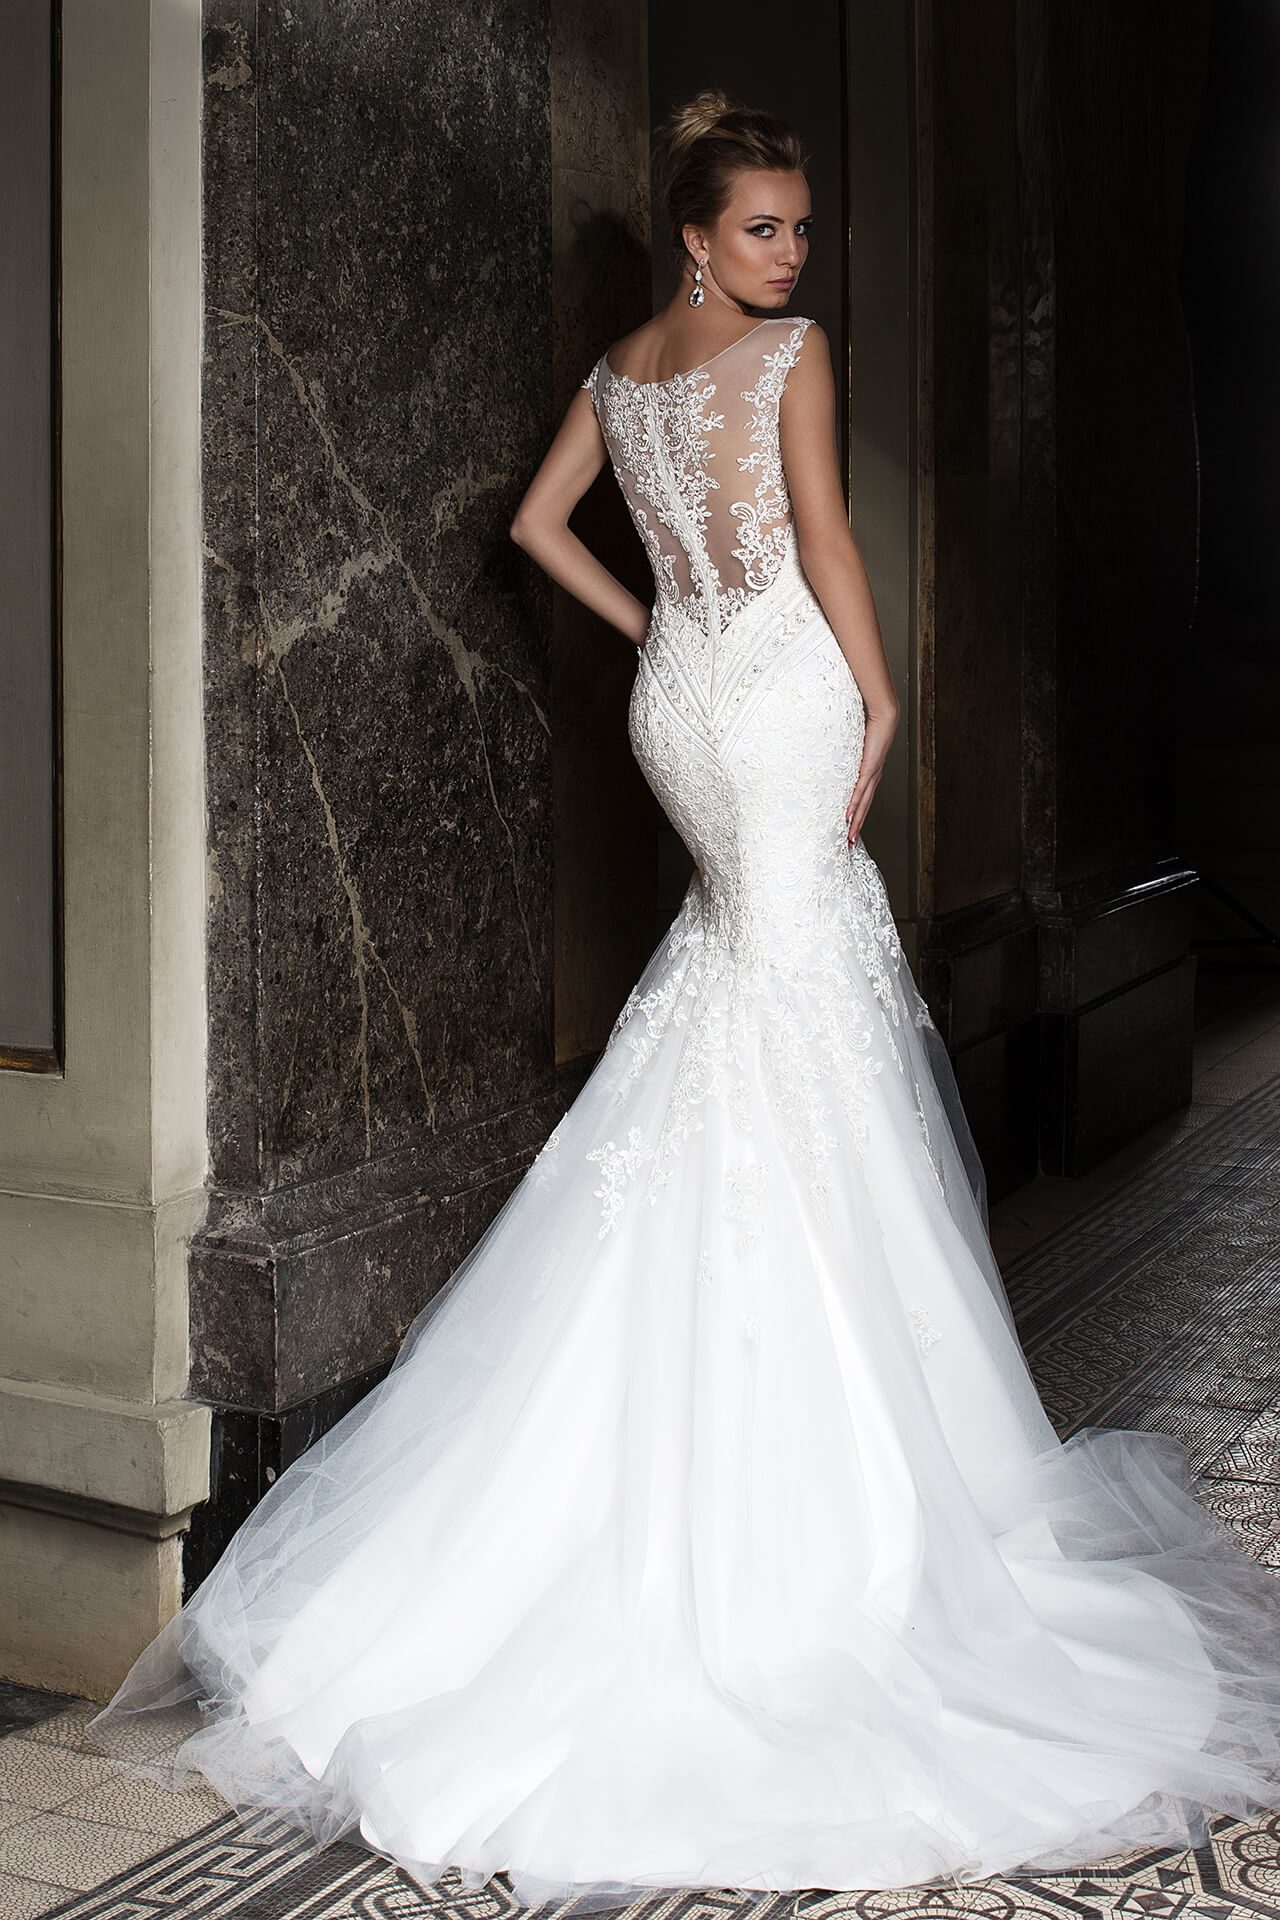 Wedding dresses Anrietta Collection  Supreme Classic  Silhouette  Mermaid  Color  Ivory  Neckline  Sweetheart  Illusion  Sleeves  Wide straps  Train  With train - foto 3